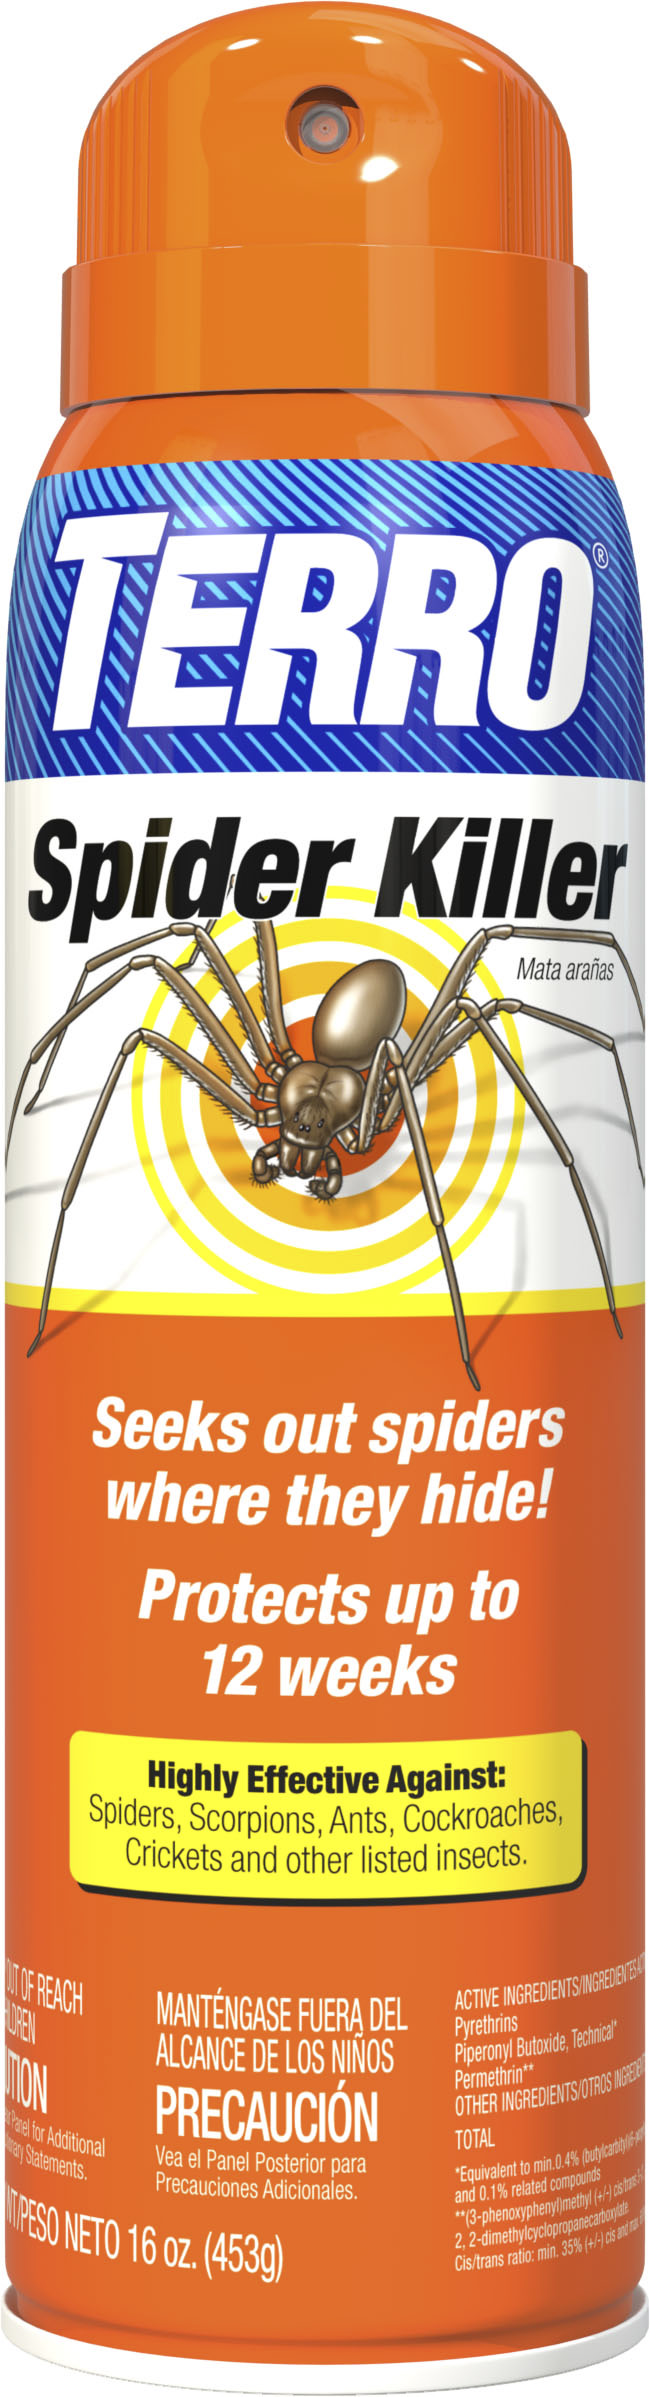 Border Control Terro Offers Advise On How To Prevent Spider And Insect Home Invasions As Falling Temperatures Drive Pests Indoors